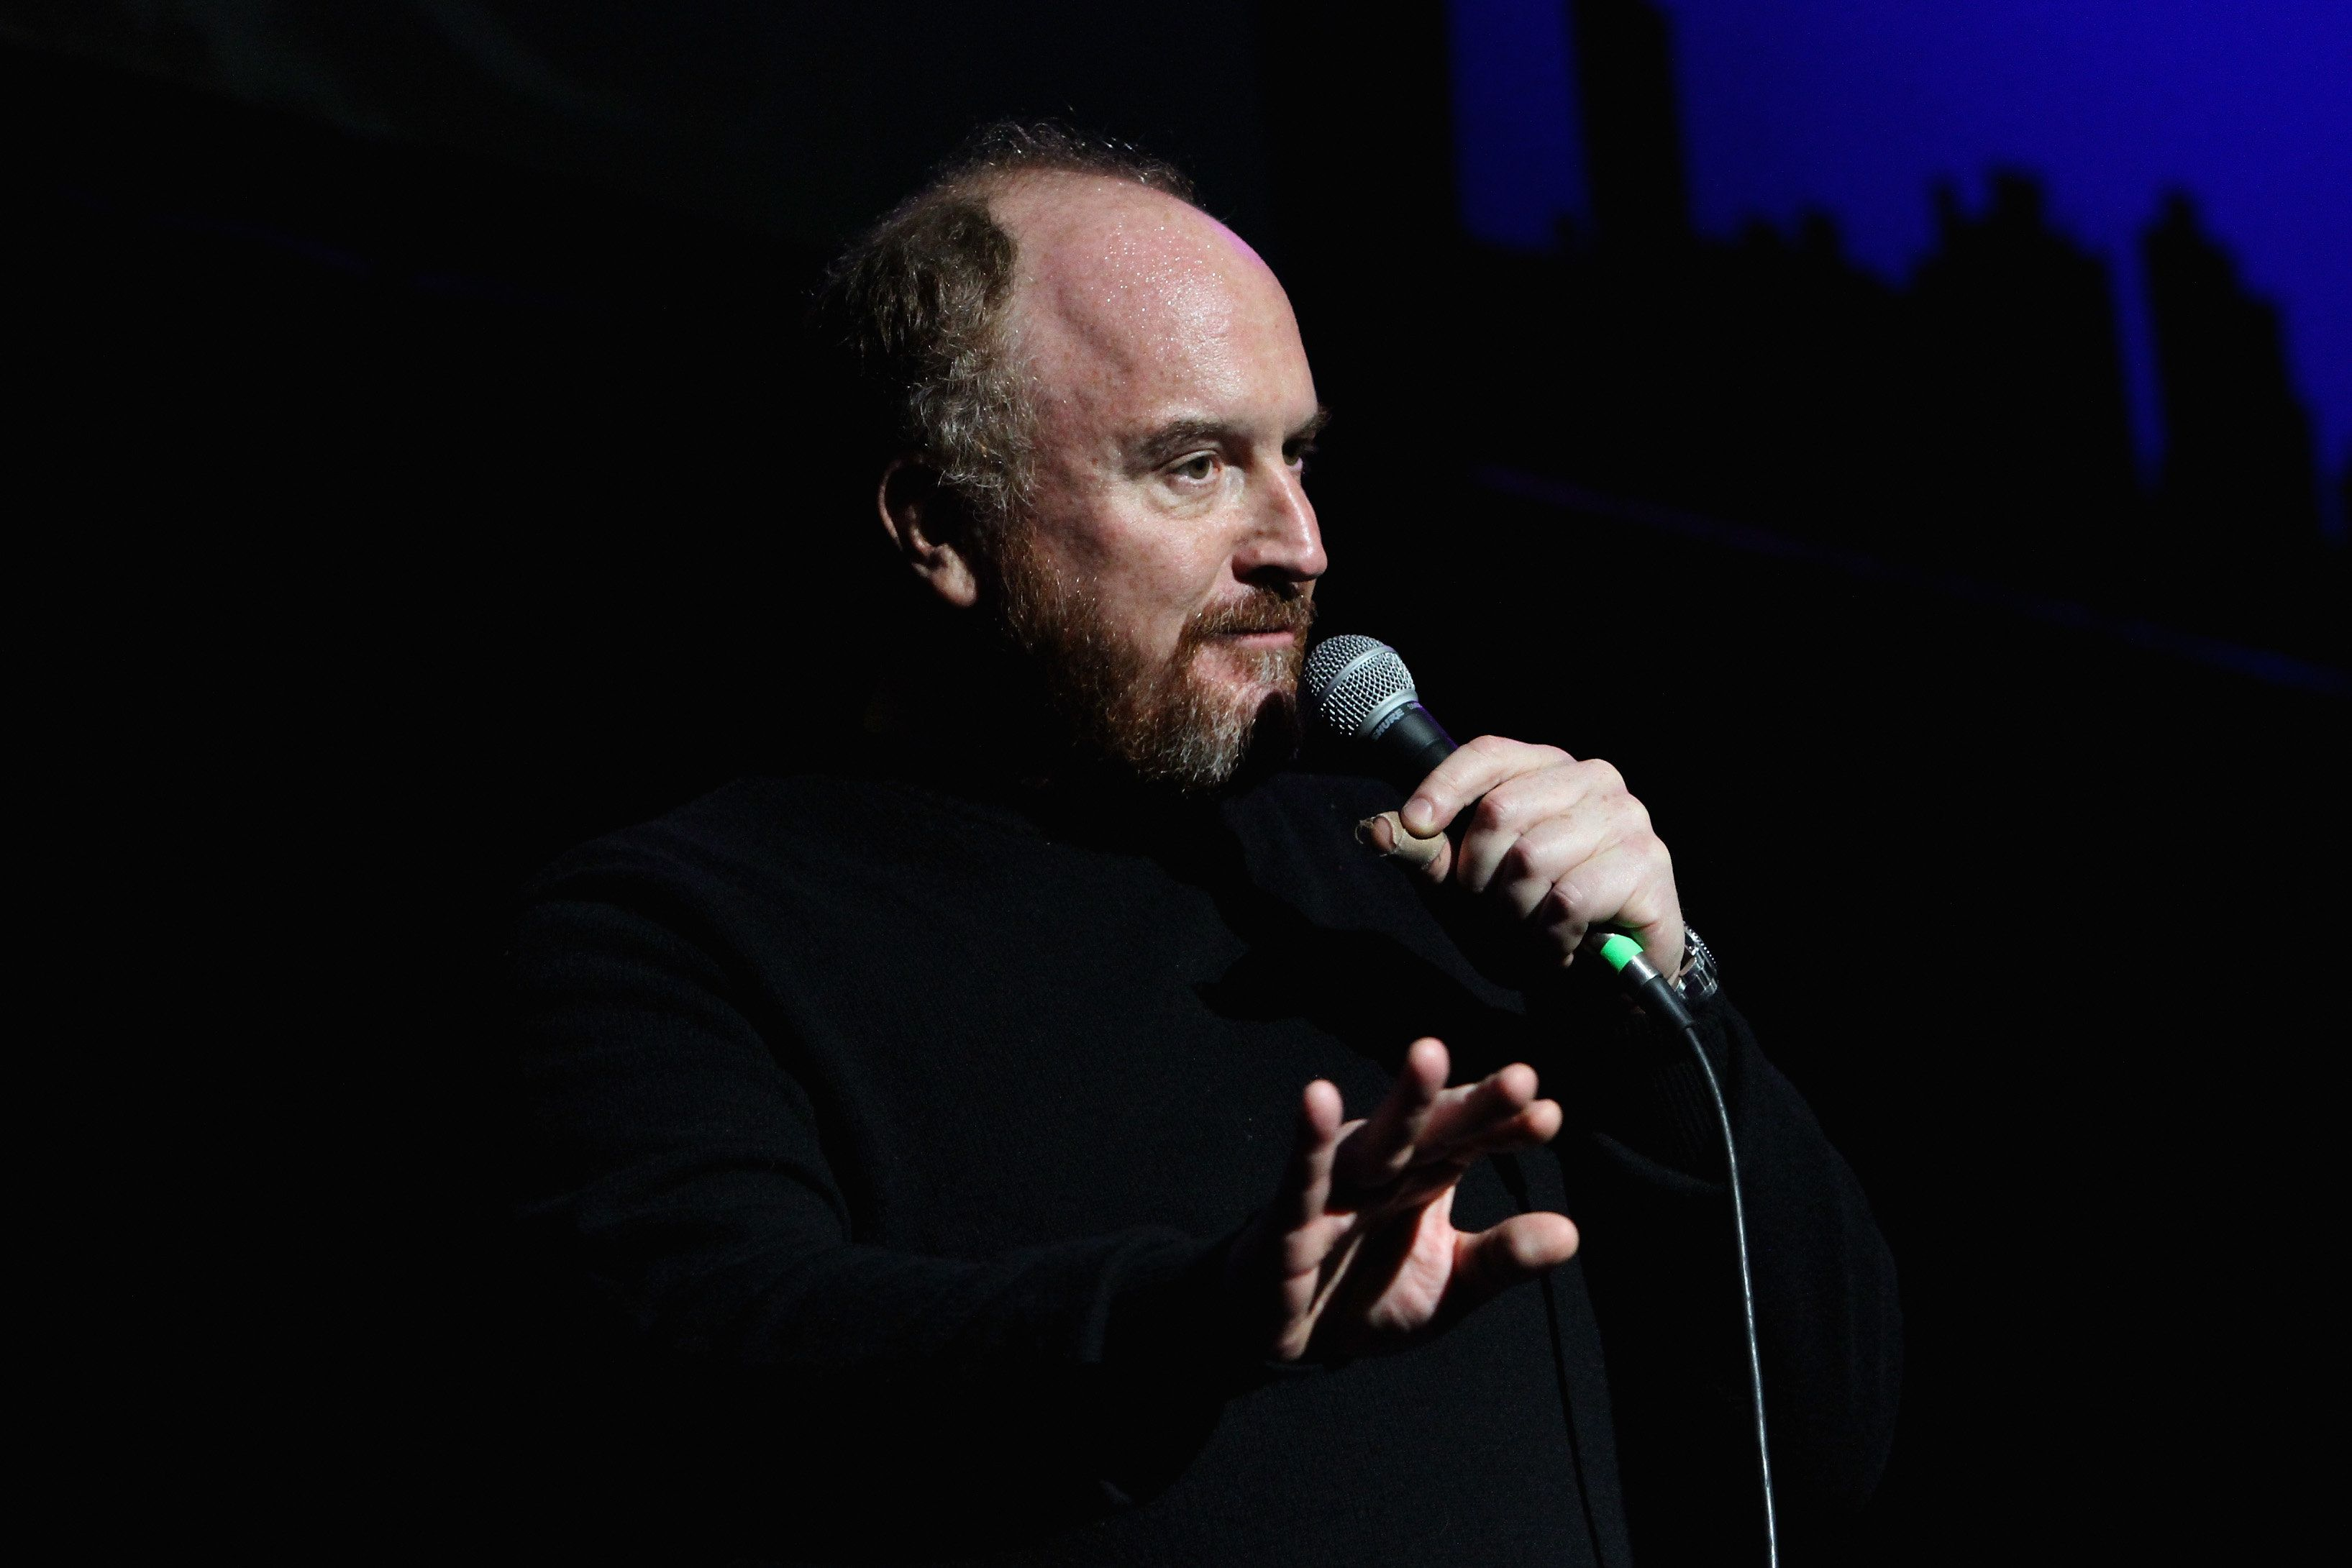 Comedian Louis C.K. was accused of sexual misconduct amid the Me Too movement in November 2017.